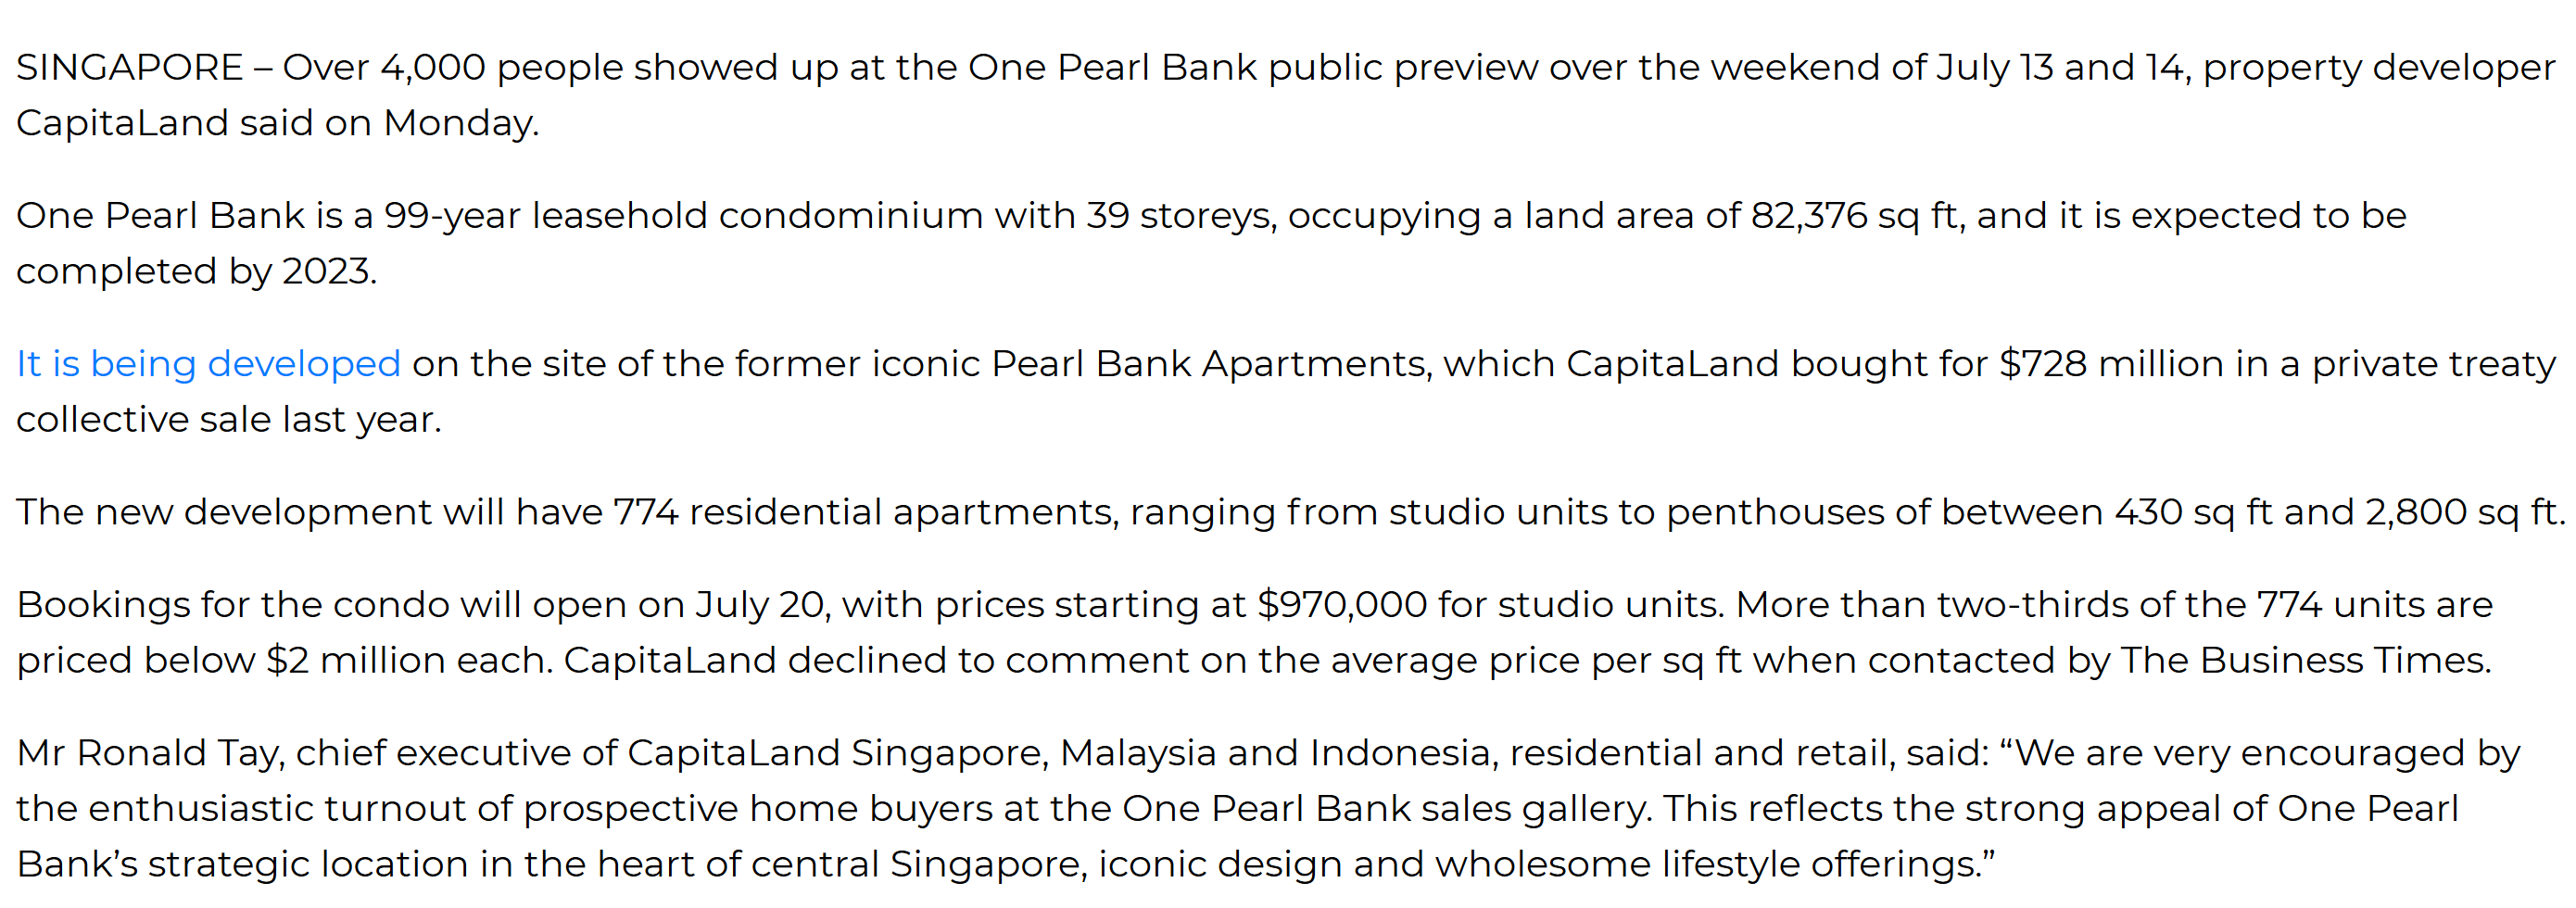 One Pearl Bank condo draws 4,000 during weekend preview